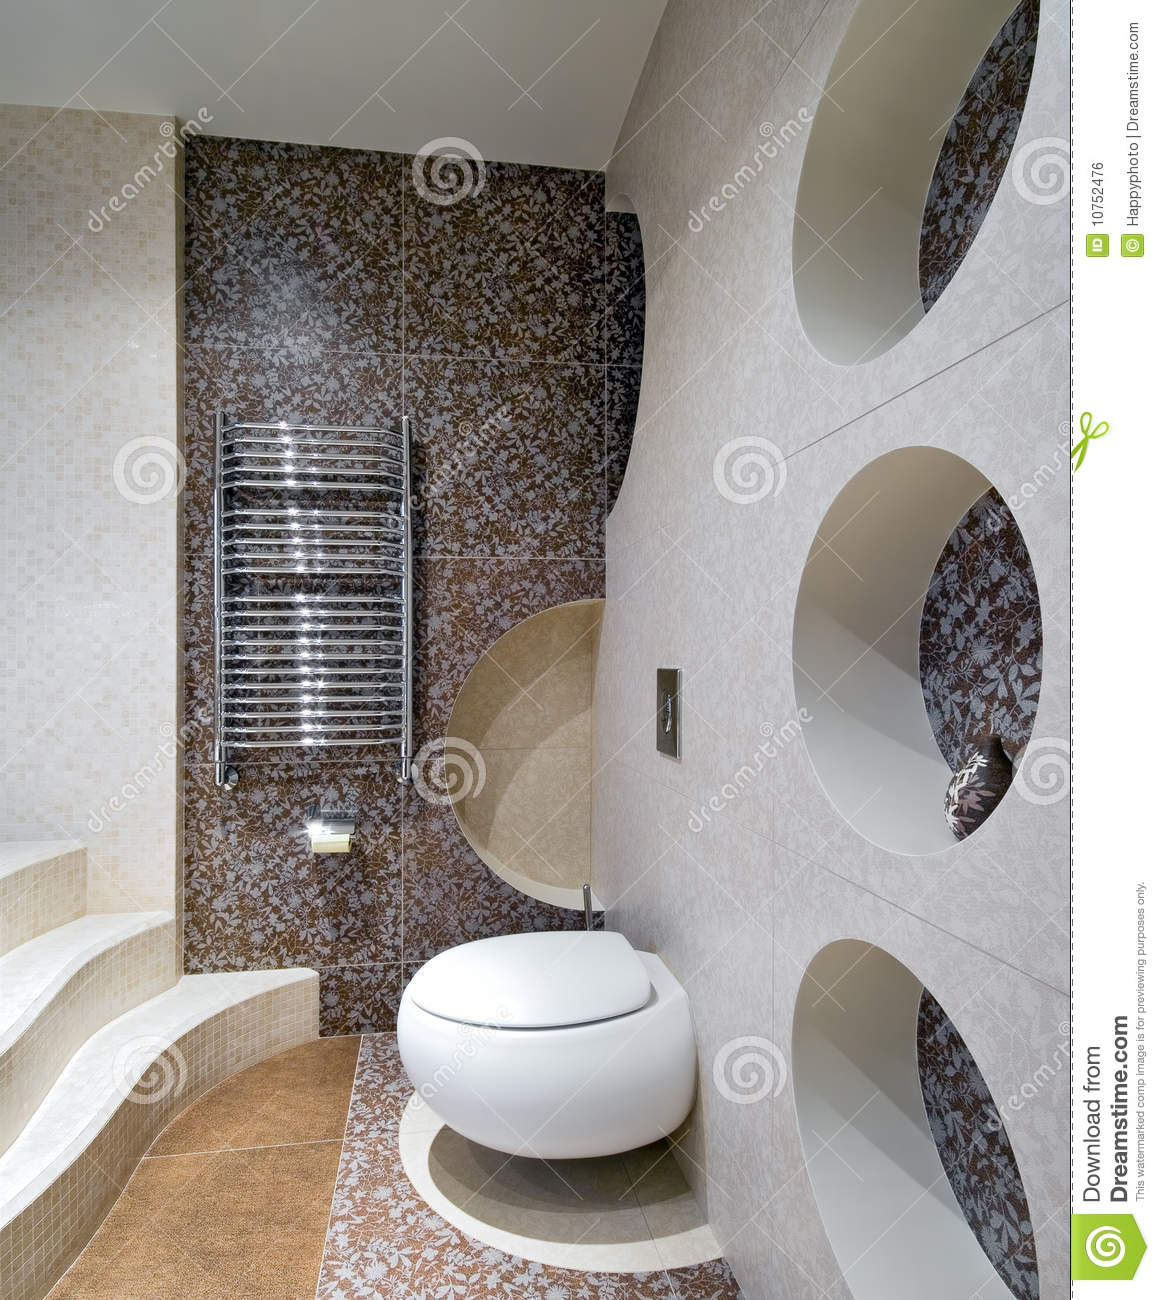 New design of toilet room royalty free stock image image for New washroom designs